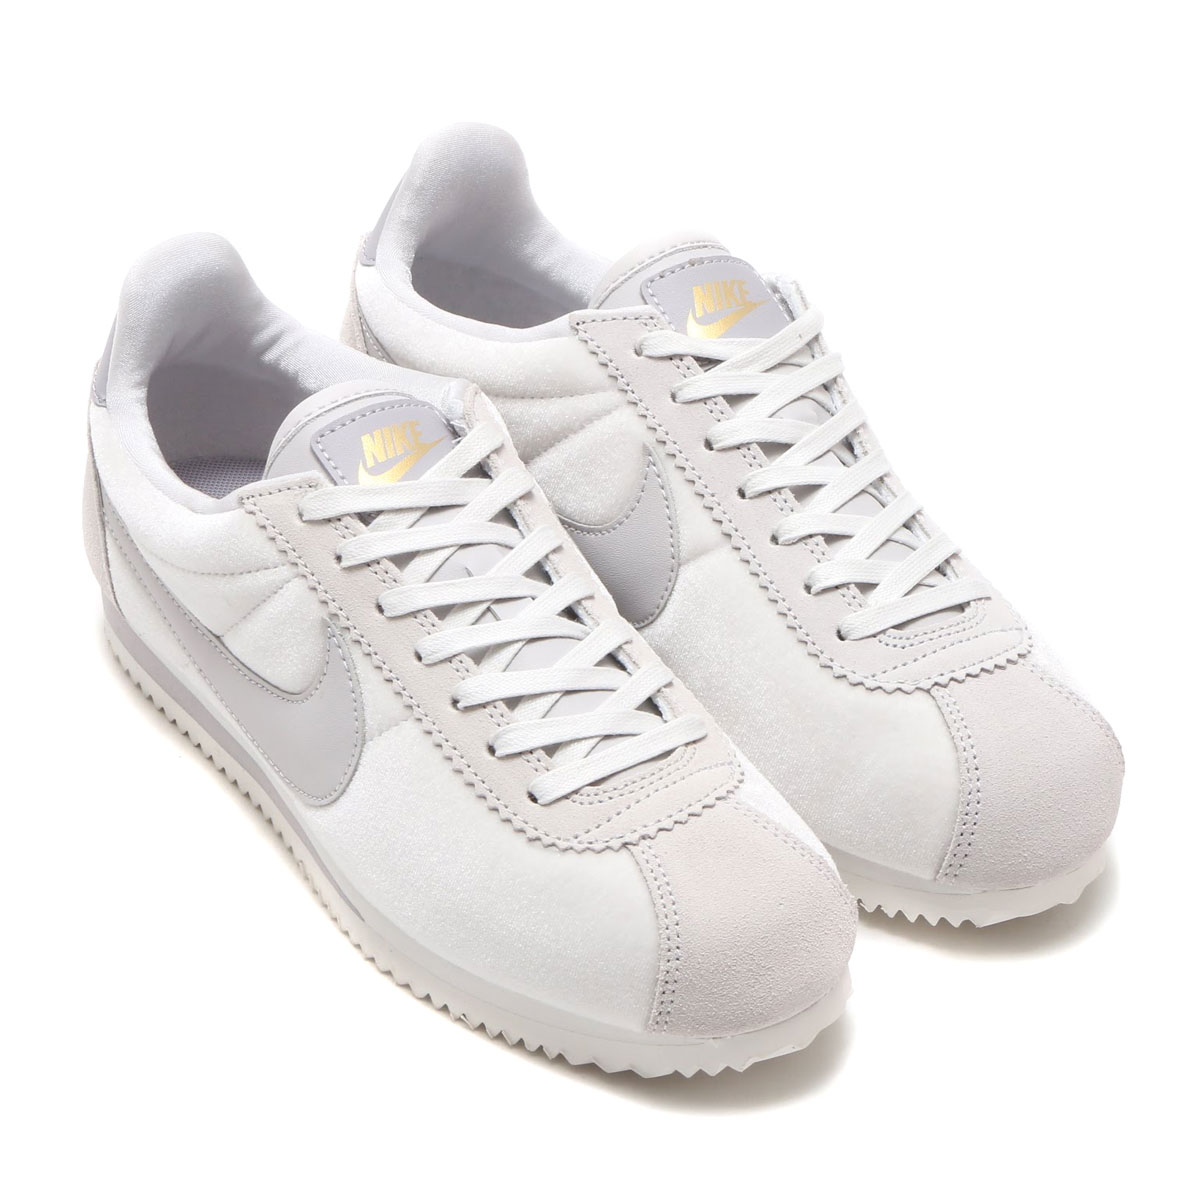 promo code eacd9 87a37 The ナイキコルテッツ SE women shoes adopt upper superior in the durability. I  succeed to the design which does not fade of the original model which  became ...